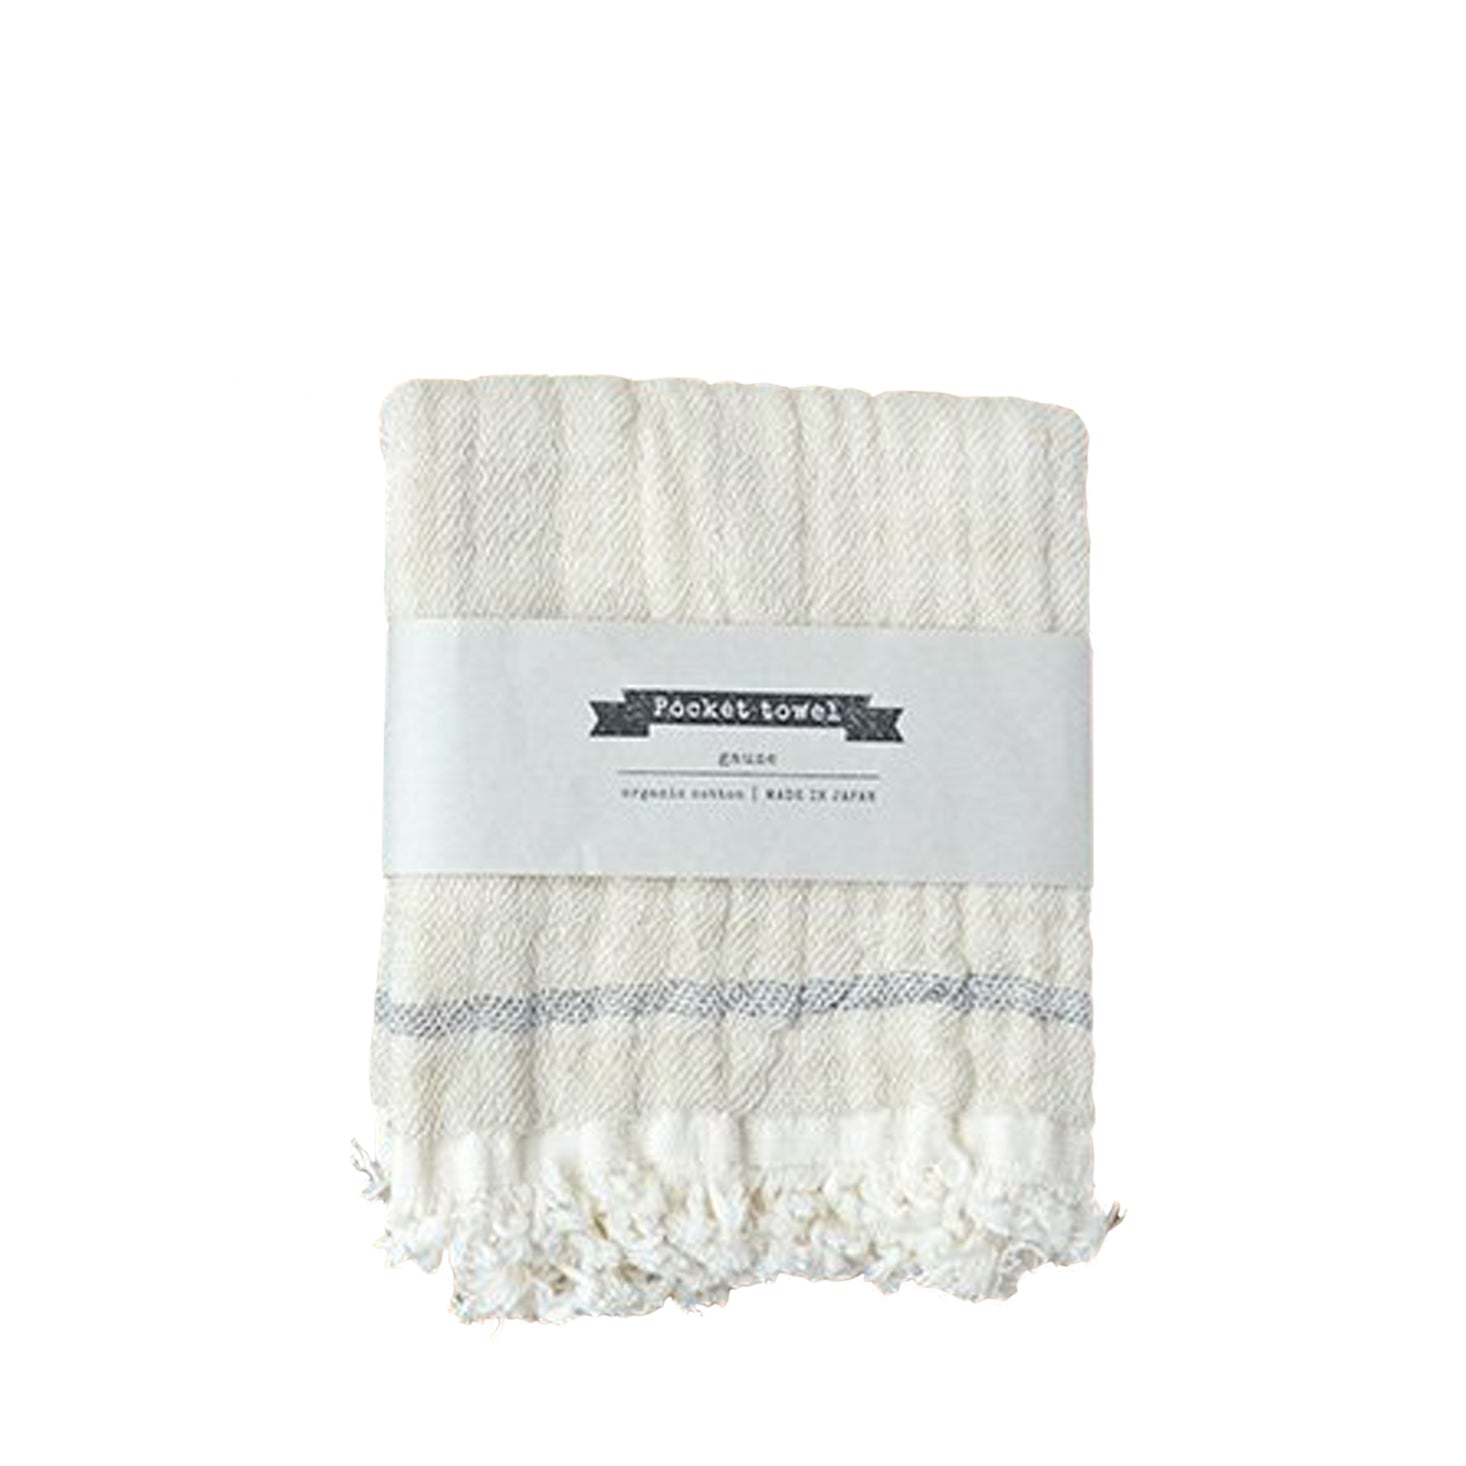 Ten i muhou Pocket Towel - Beige Navy Line